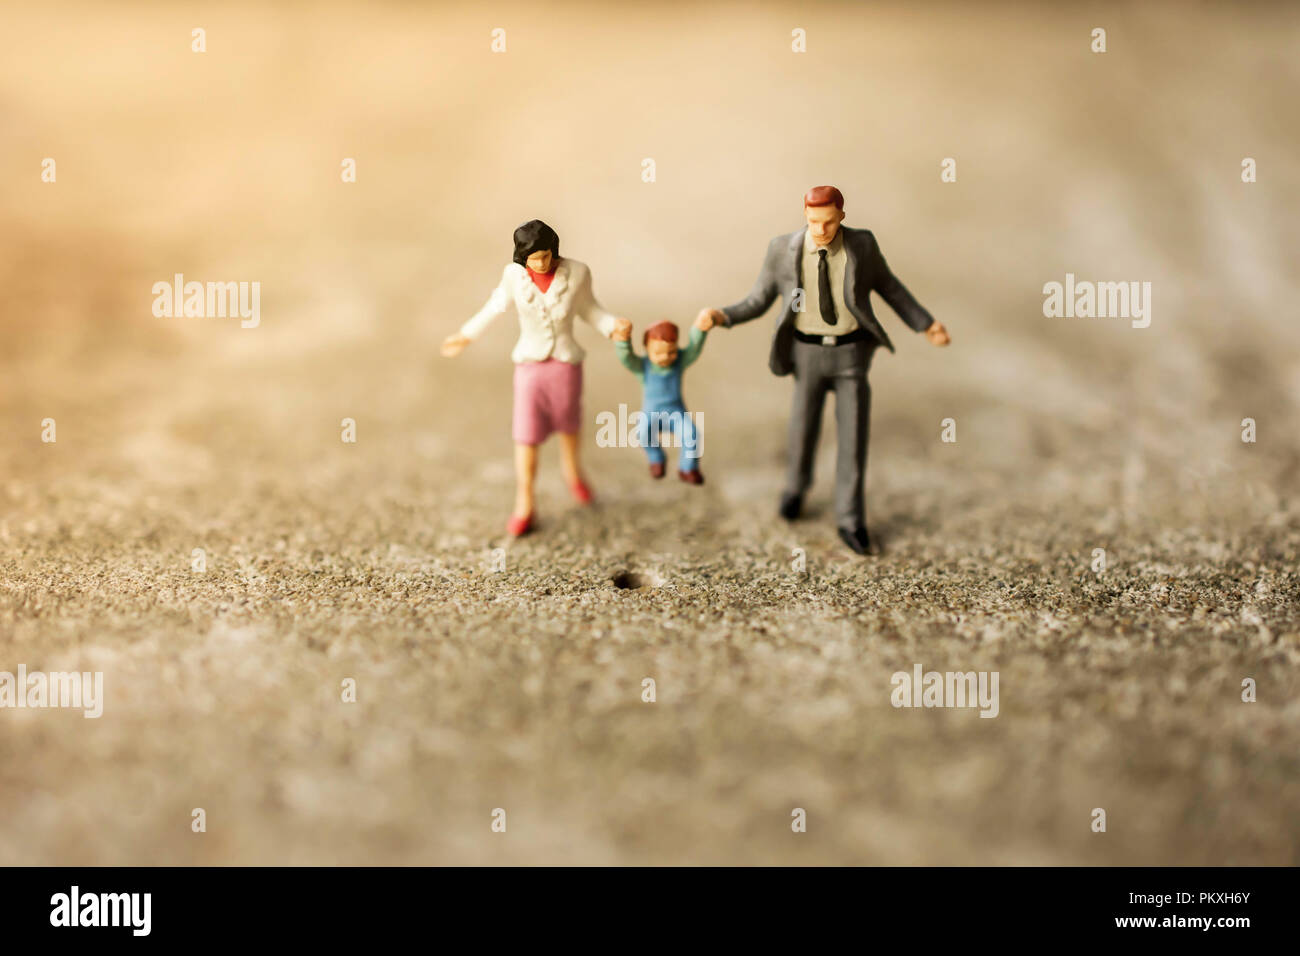 Happy Family Concept. Miniature Figure of Father, Mother and Son Walking Outdoor to Making Activities together - Stock Image